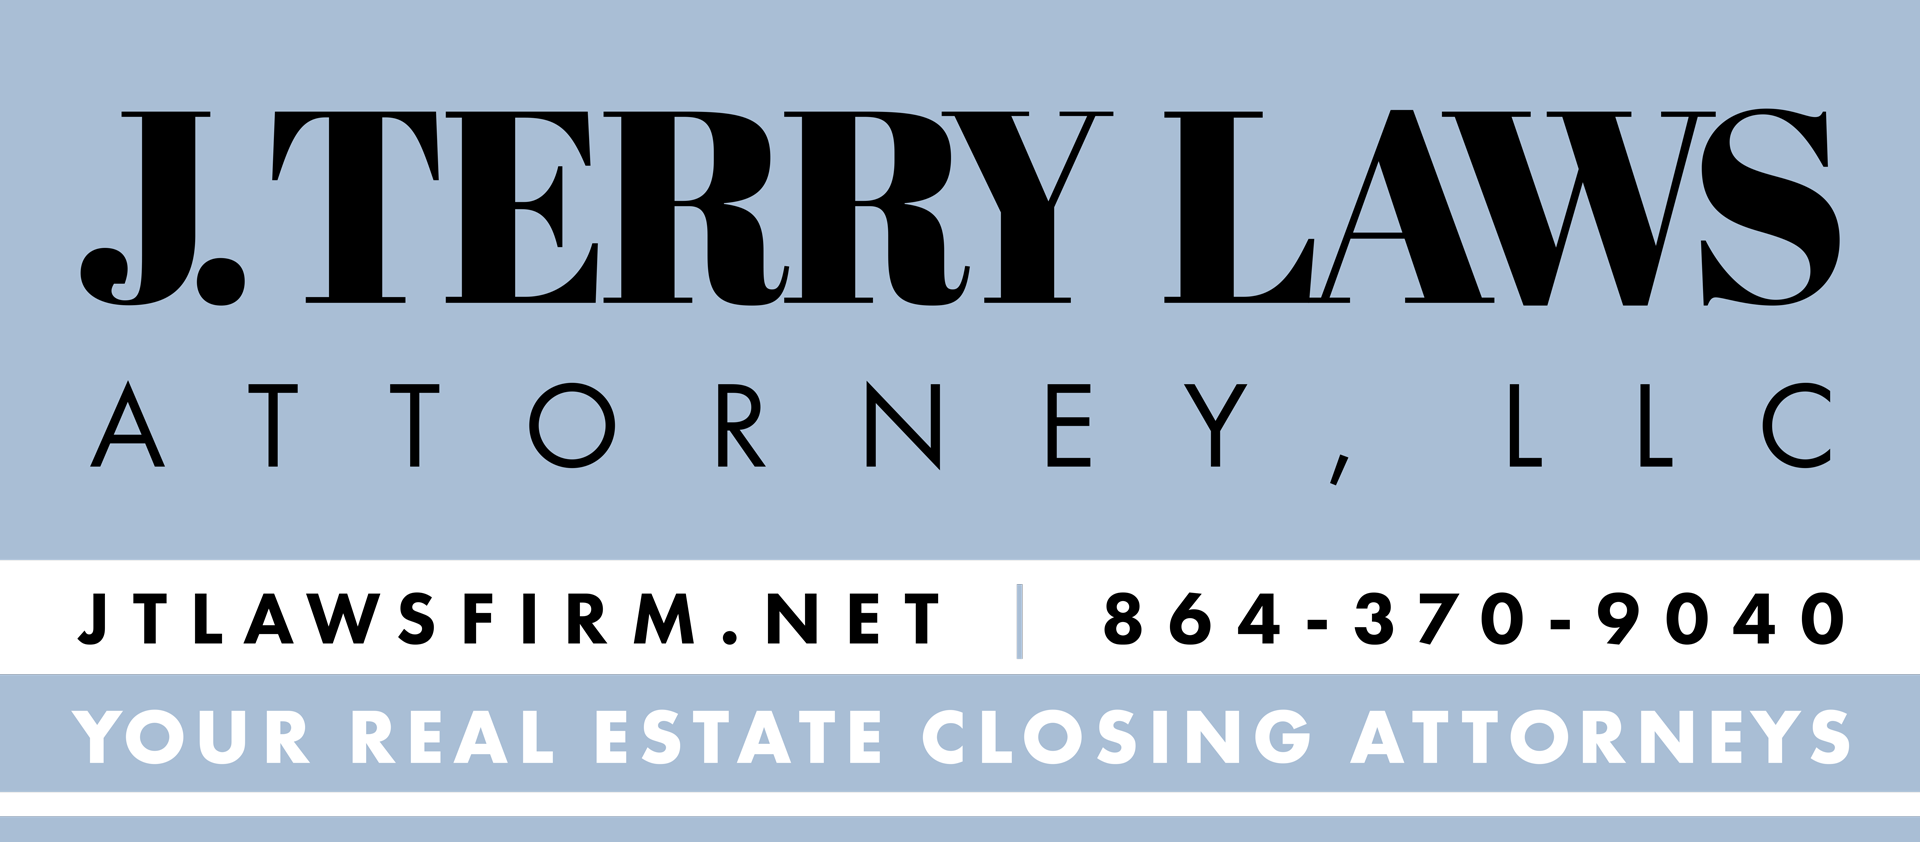 J. Terry Laws Attorney